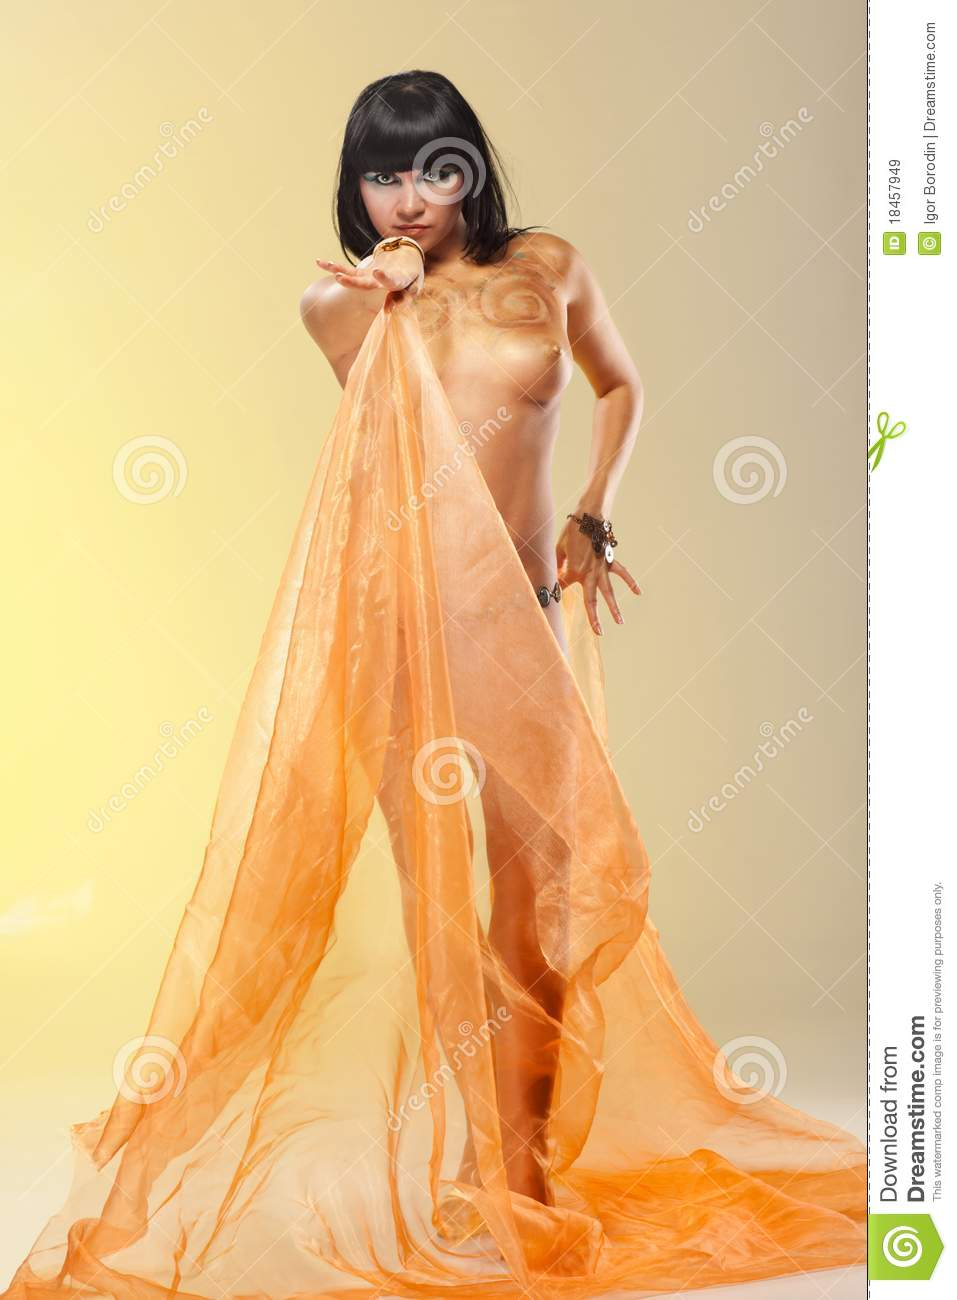 royalty free stock photo portrait naughty woman cleopatra style image